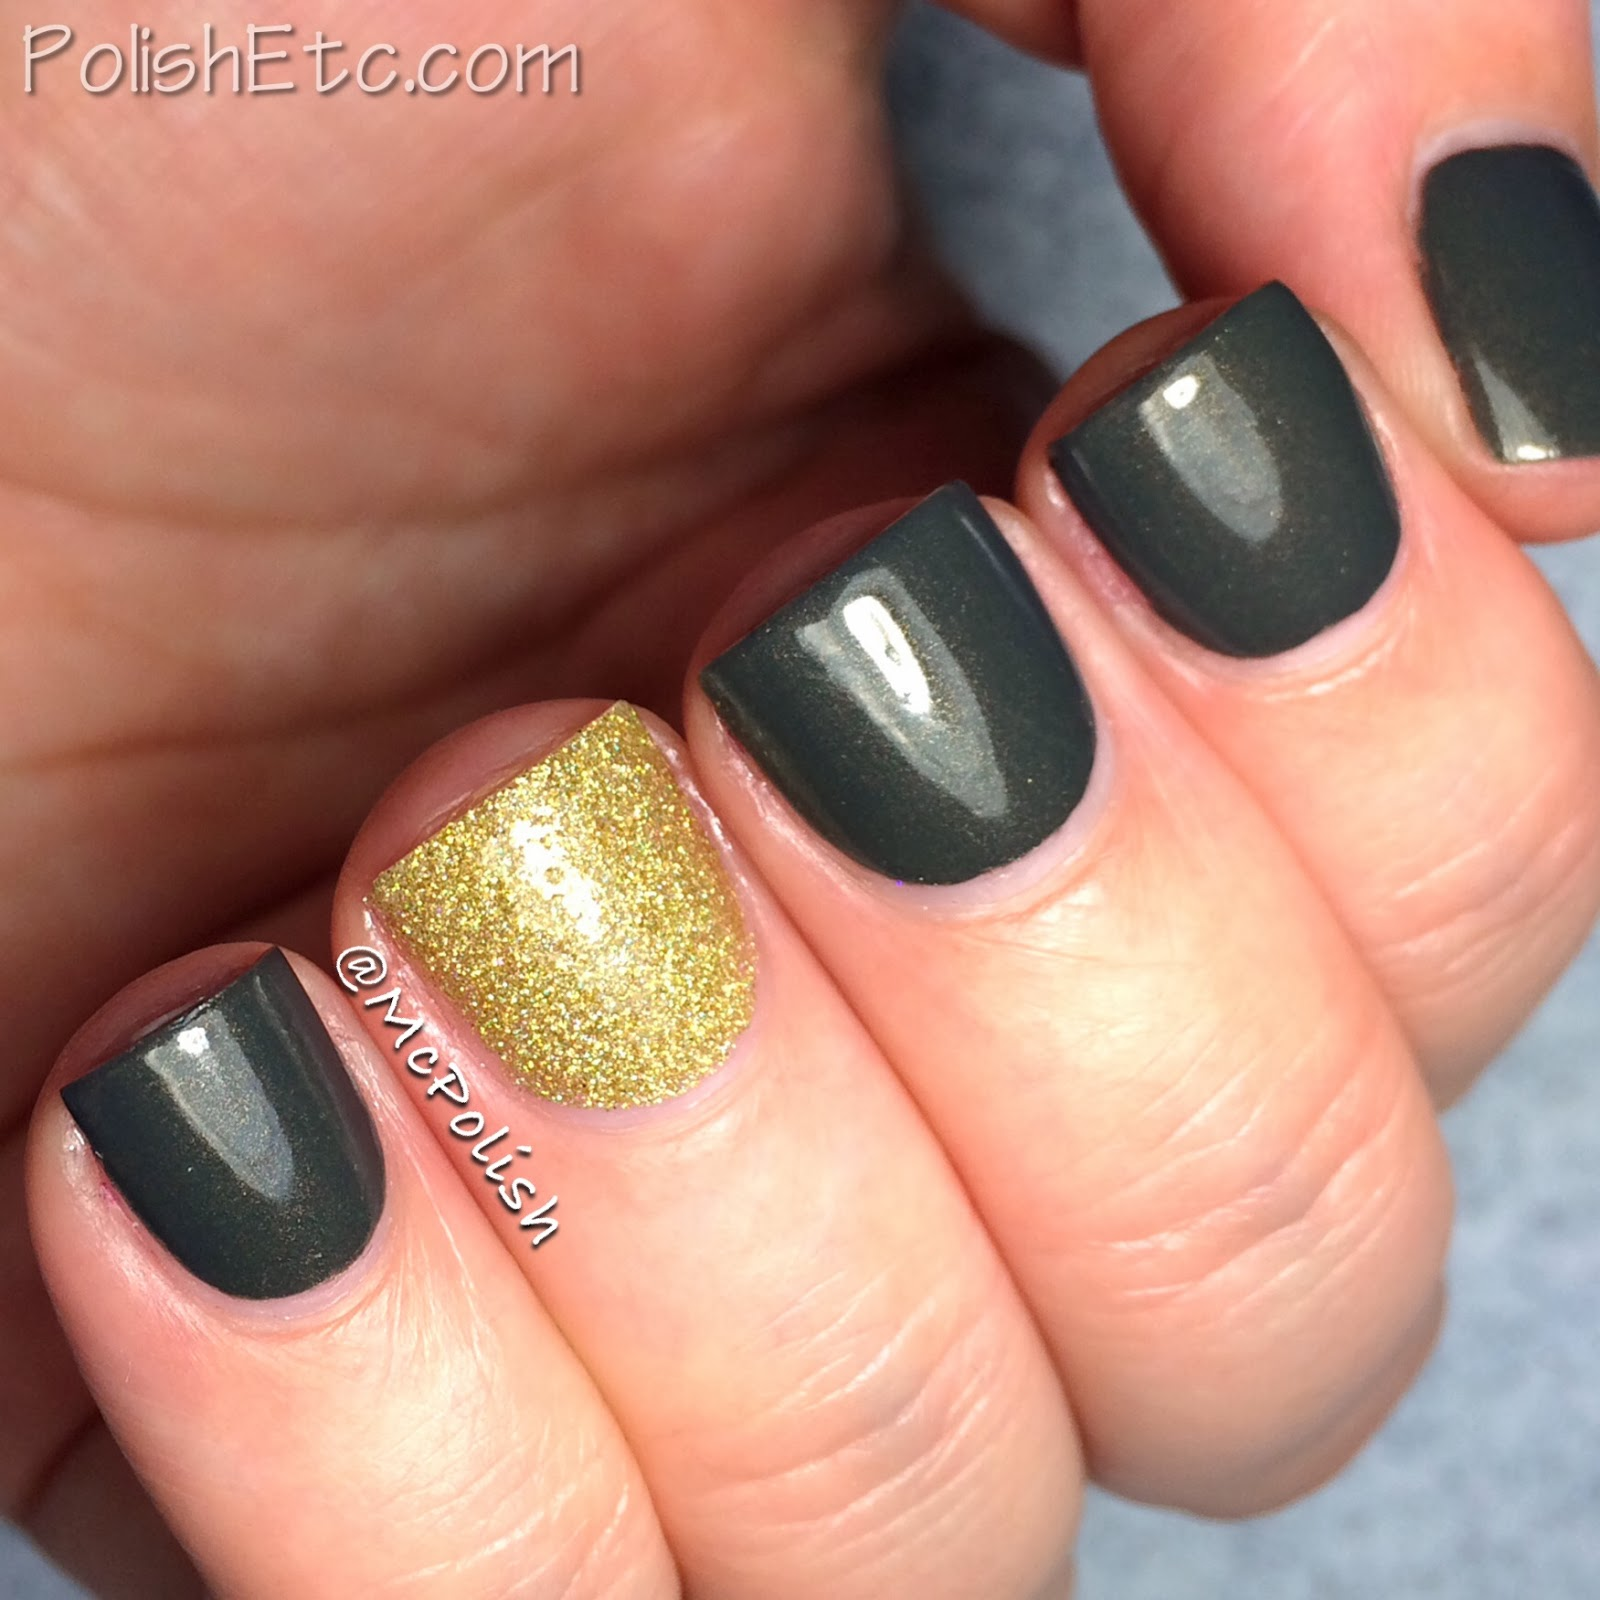 Revlon Parfumerie scented nail polish in Italian Leather